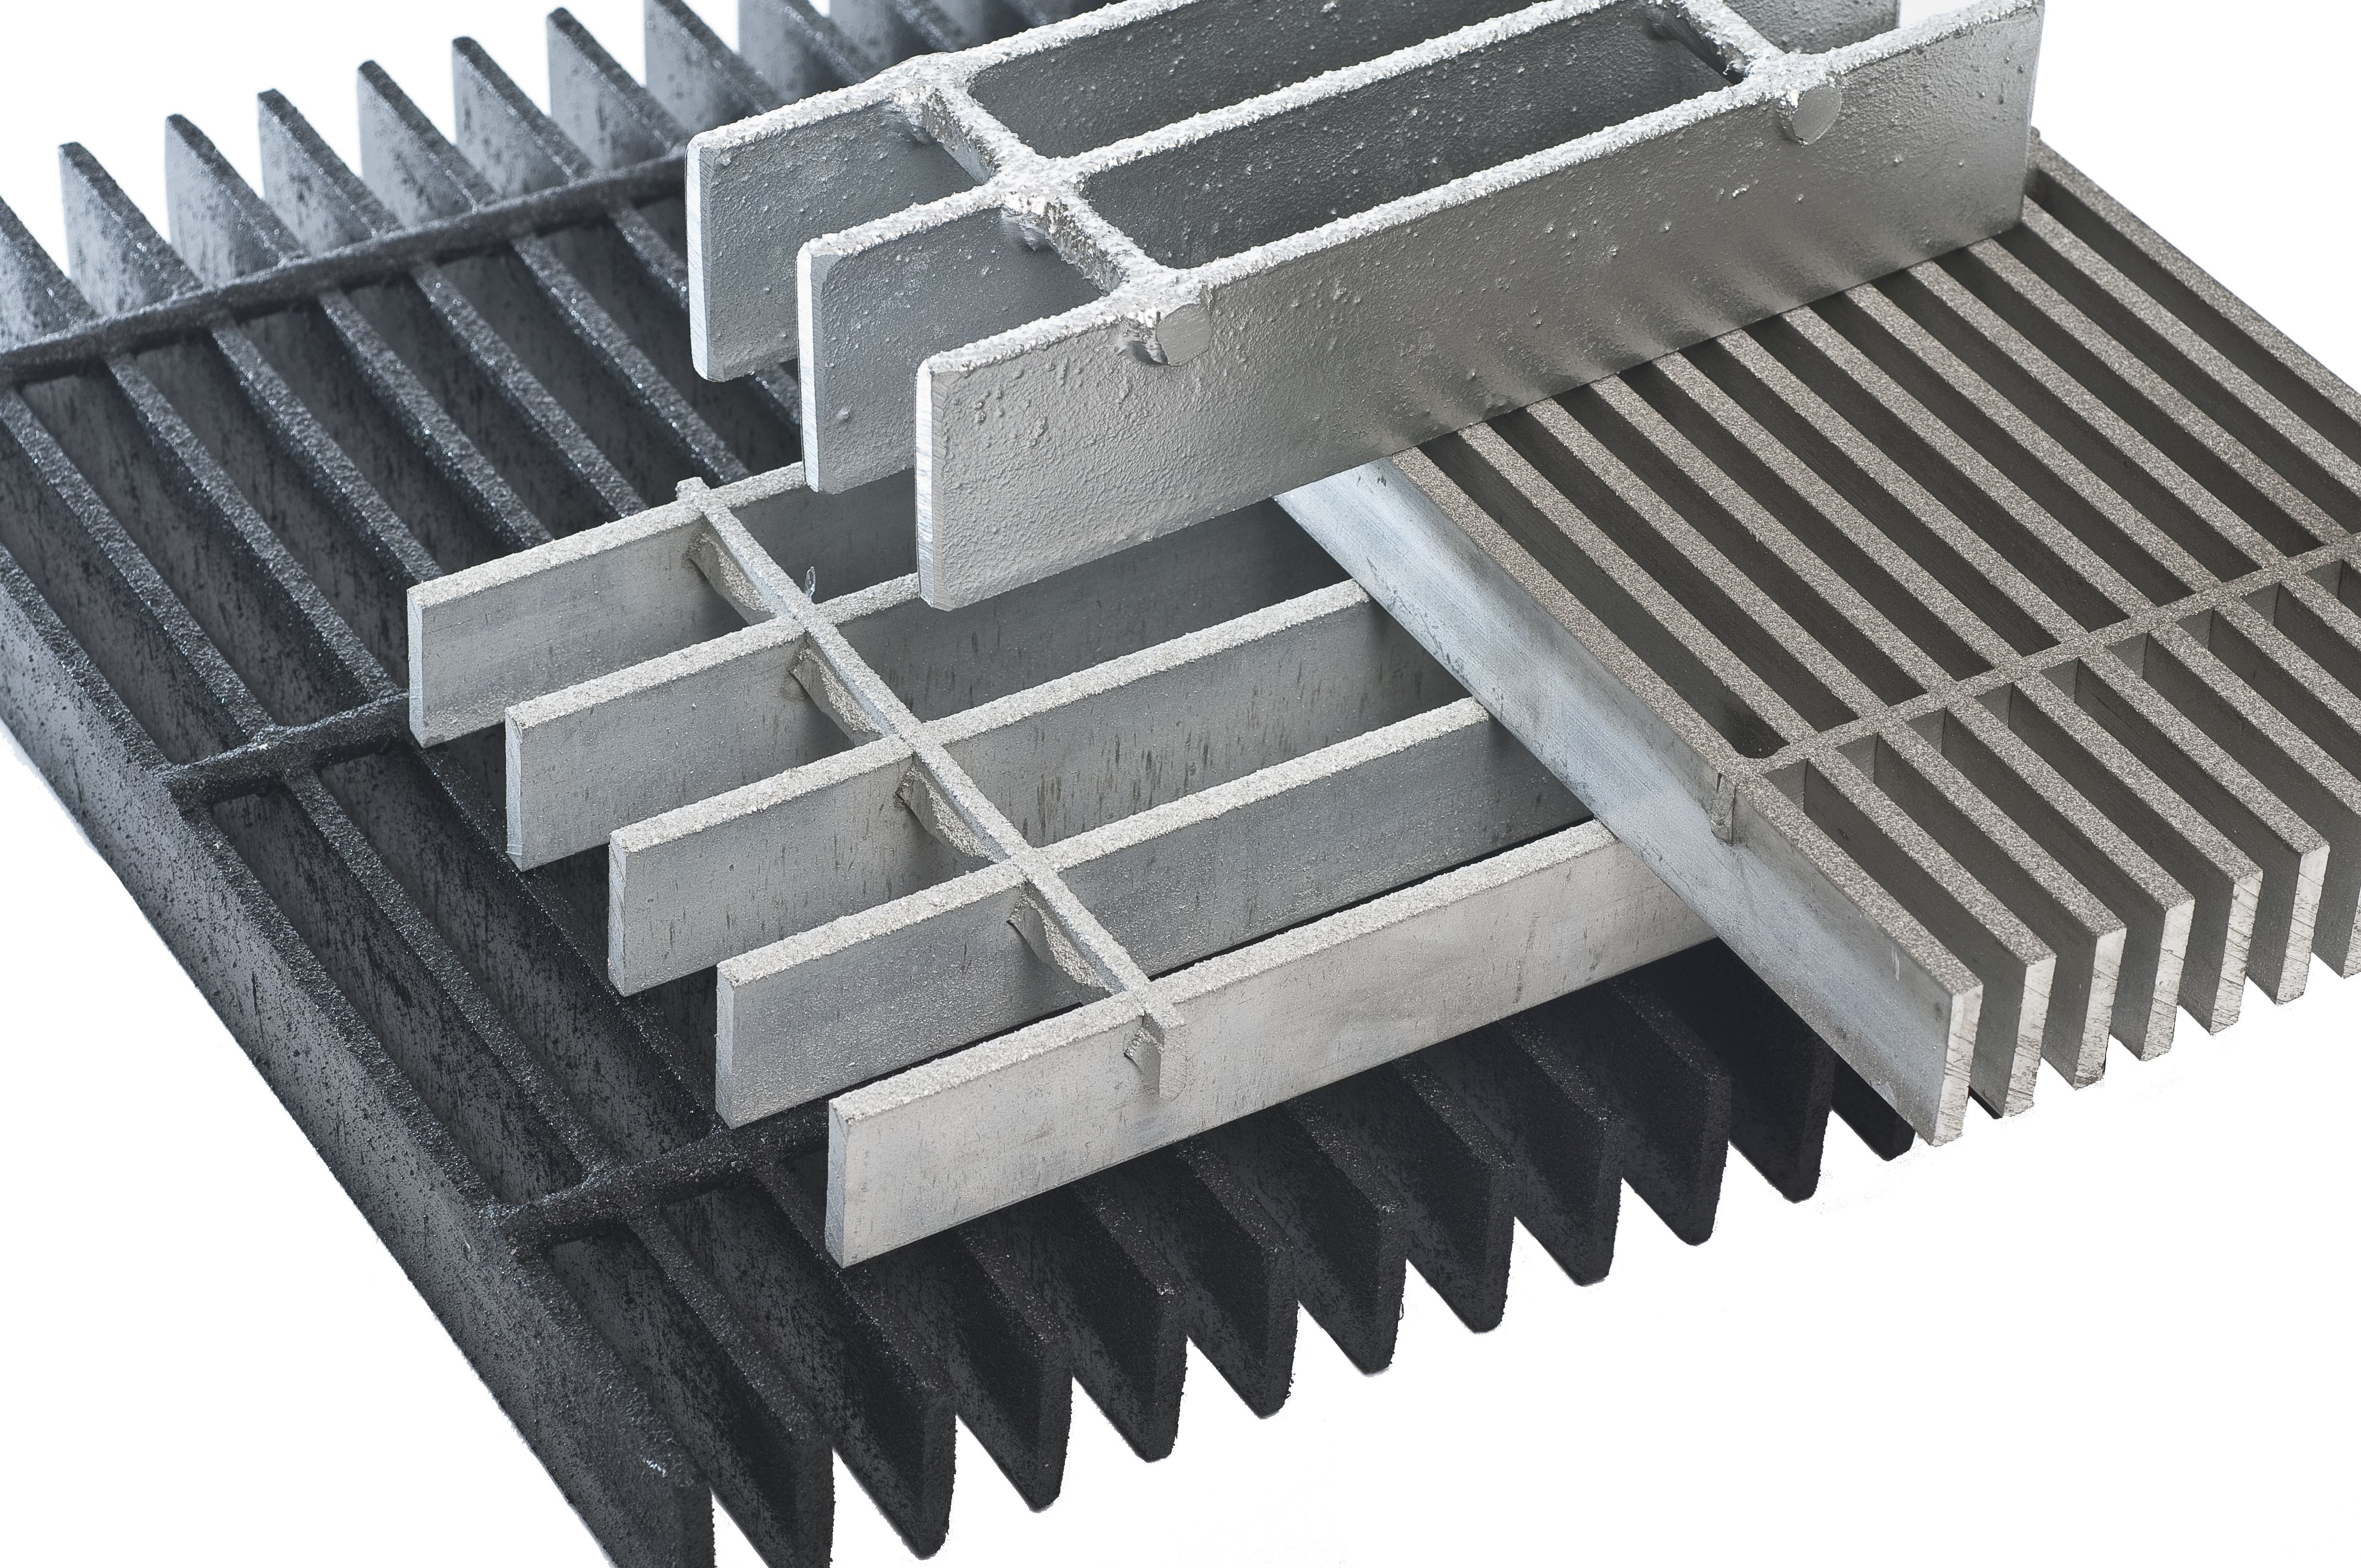 Grip Grate Slipnot Slip Resistant Grating Provides Maximum Traction Even In Wet And Oily Environments Metal Deck Expanded Metal Metal Bar